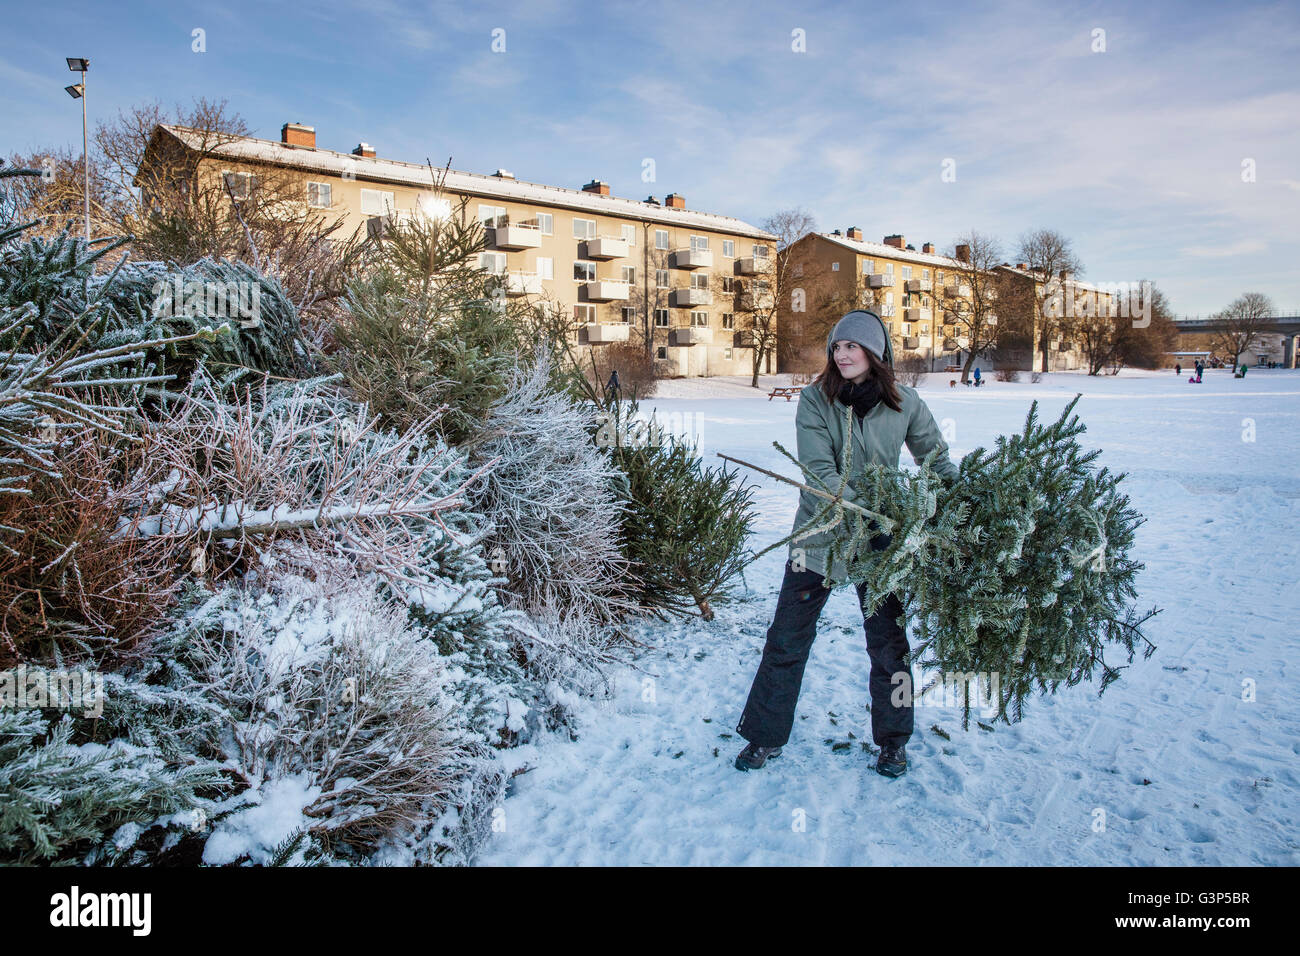 Sweden, Sodermanland, Johanneshov, Nytorps Garde, Young woman throwing out old Christmas tree - Stock Image